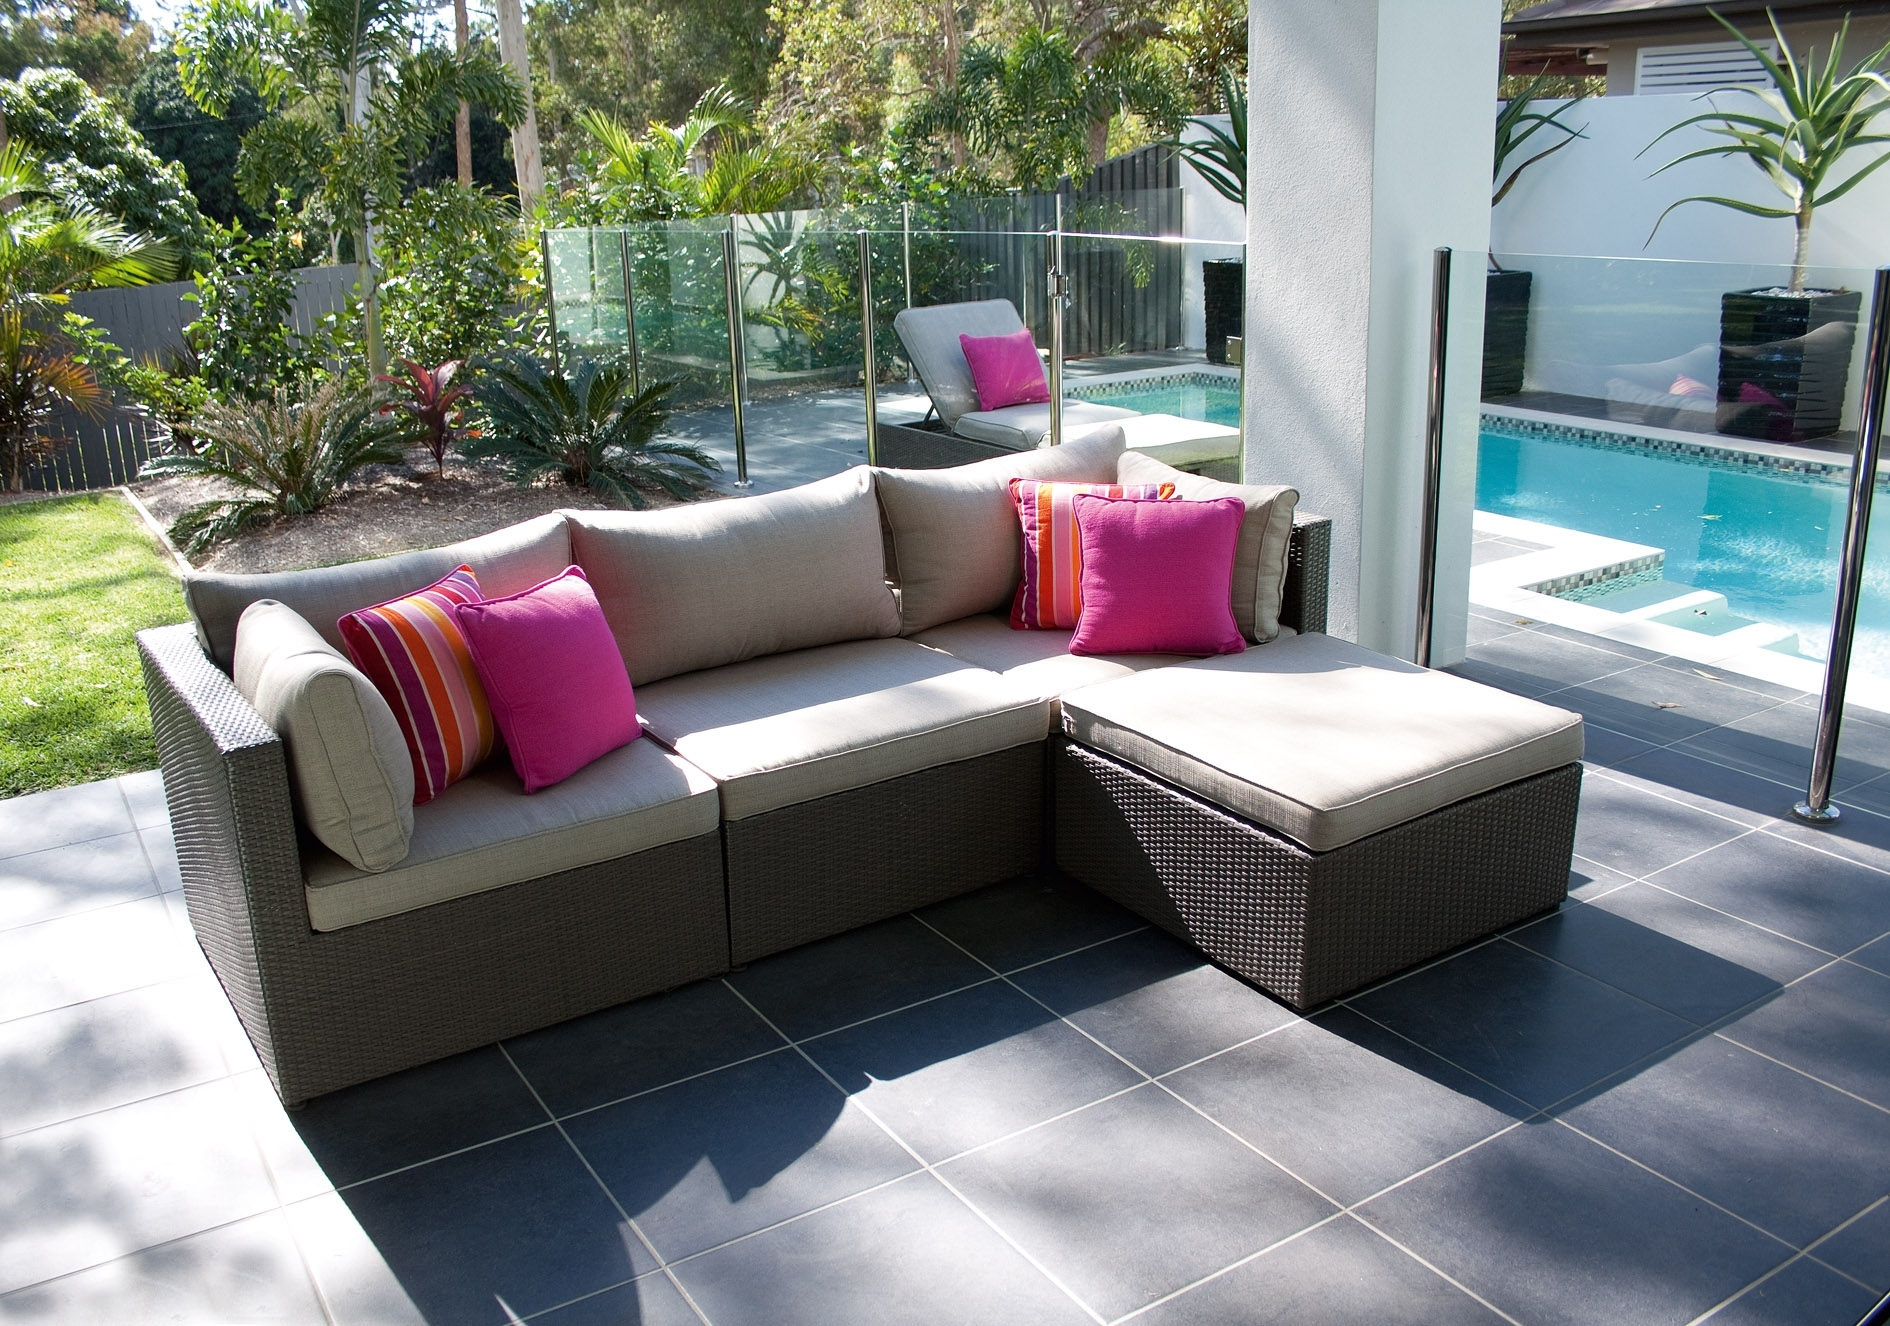 Image of: Outdoor Lounging Furniture Lounge Sets Rental Chicago Clearance With Outdoor Lounge Furniture Modern Outdoor Lounge Furniture Modern Design